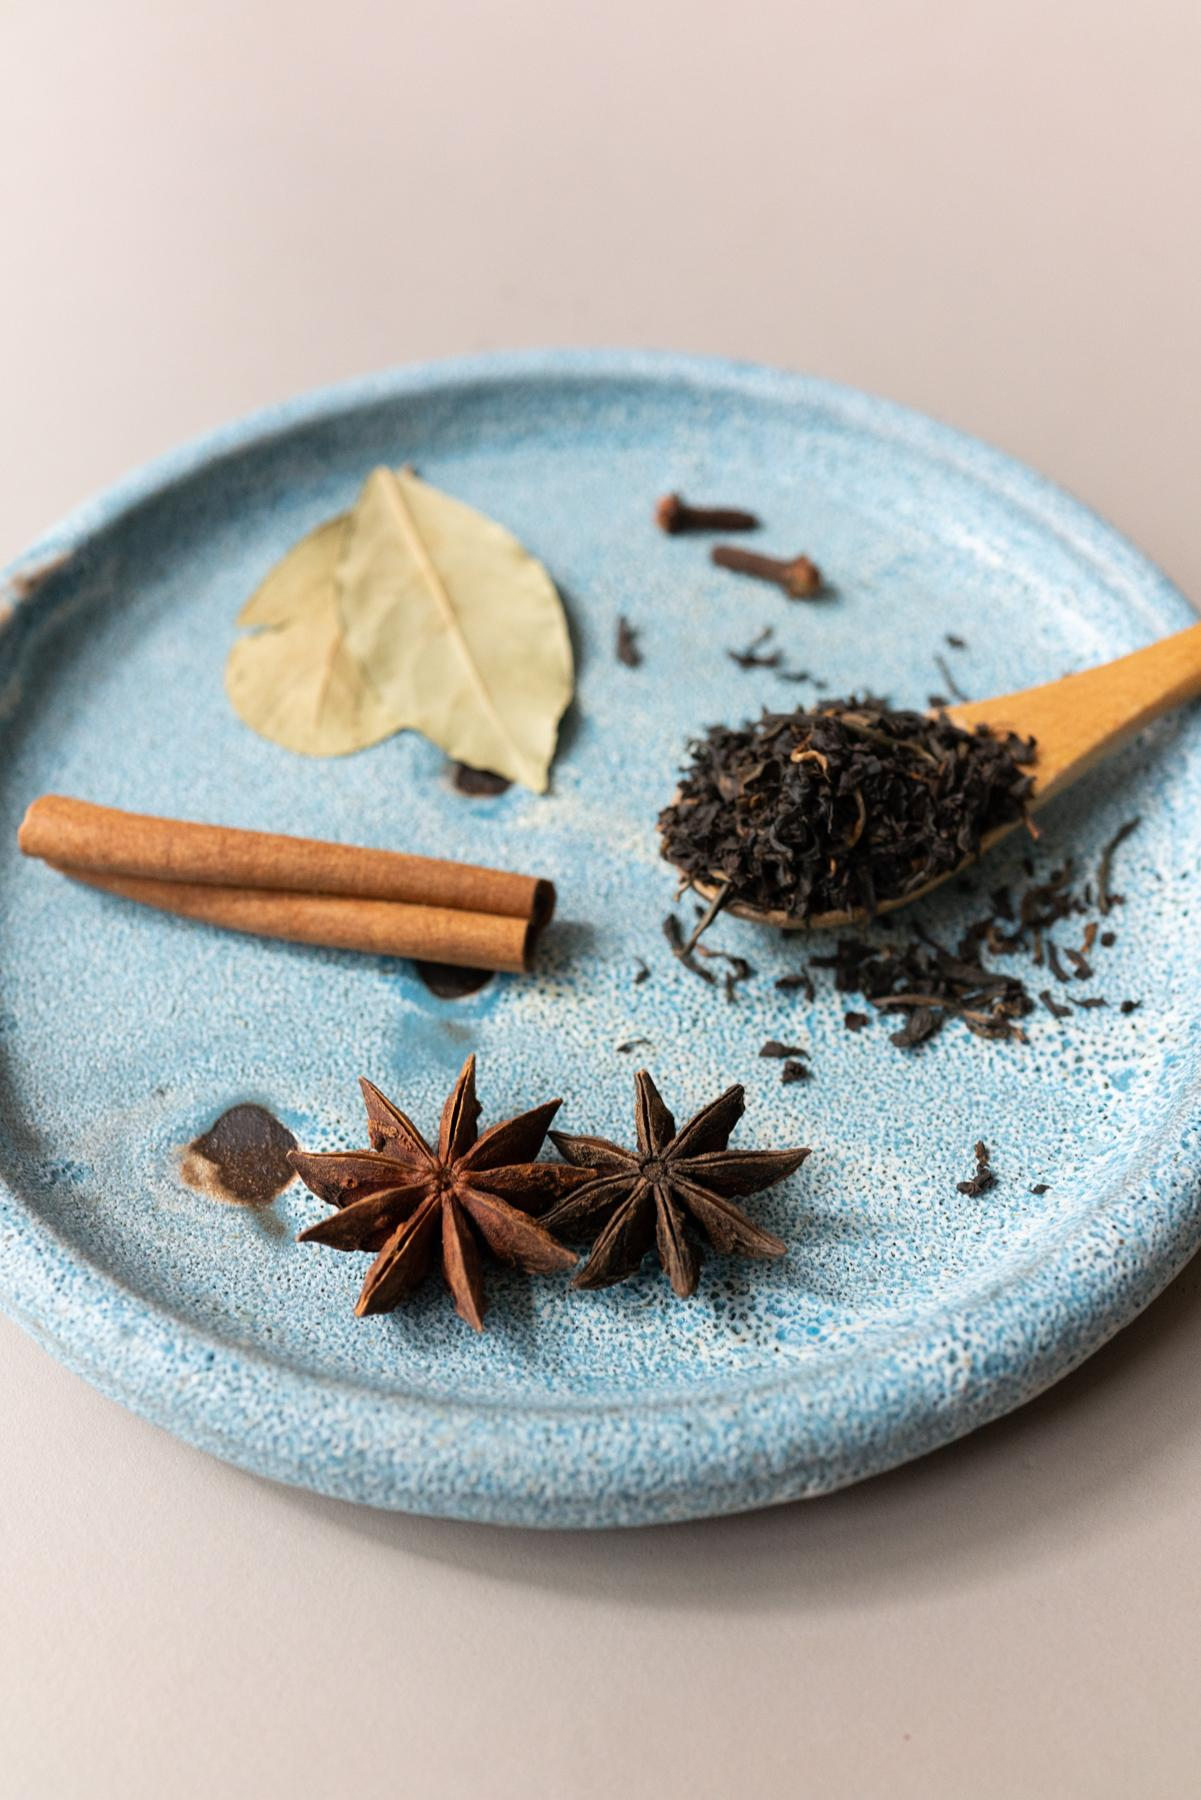 Spices for Chinese tea eggs. Clockwise from top: bay leaves, cloves, black tea, star anise, and cinnamon stick)